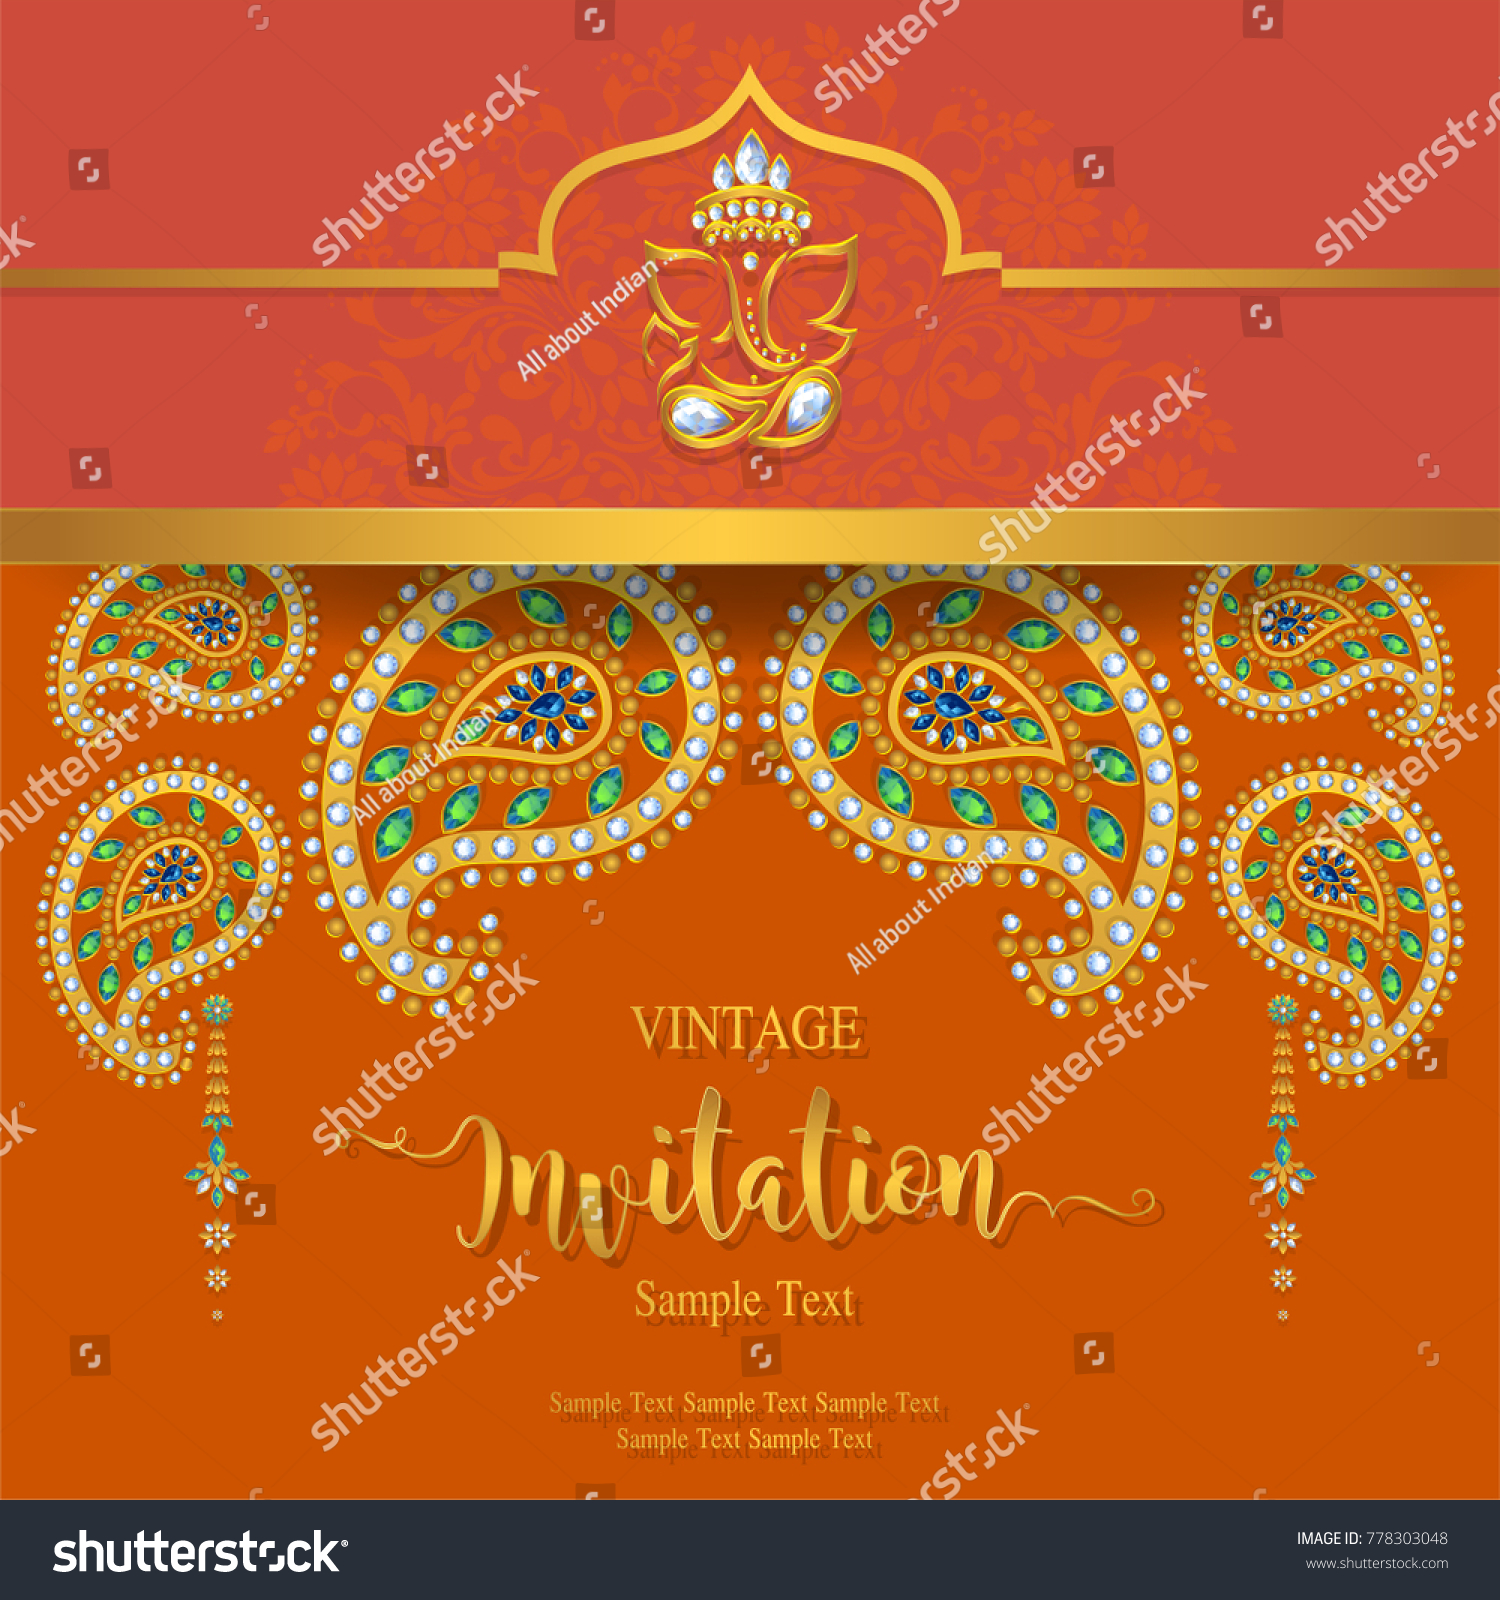 Indian Wedding Invitation Card Templates Gold Stock Vector (Royalty Free)  778303048